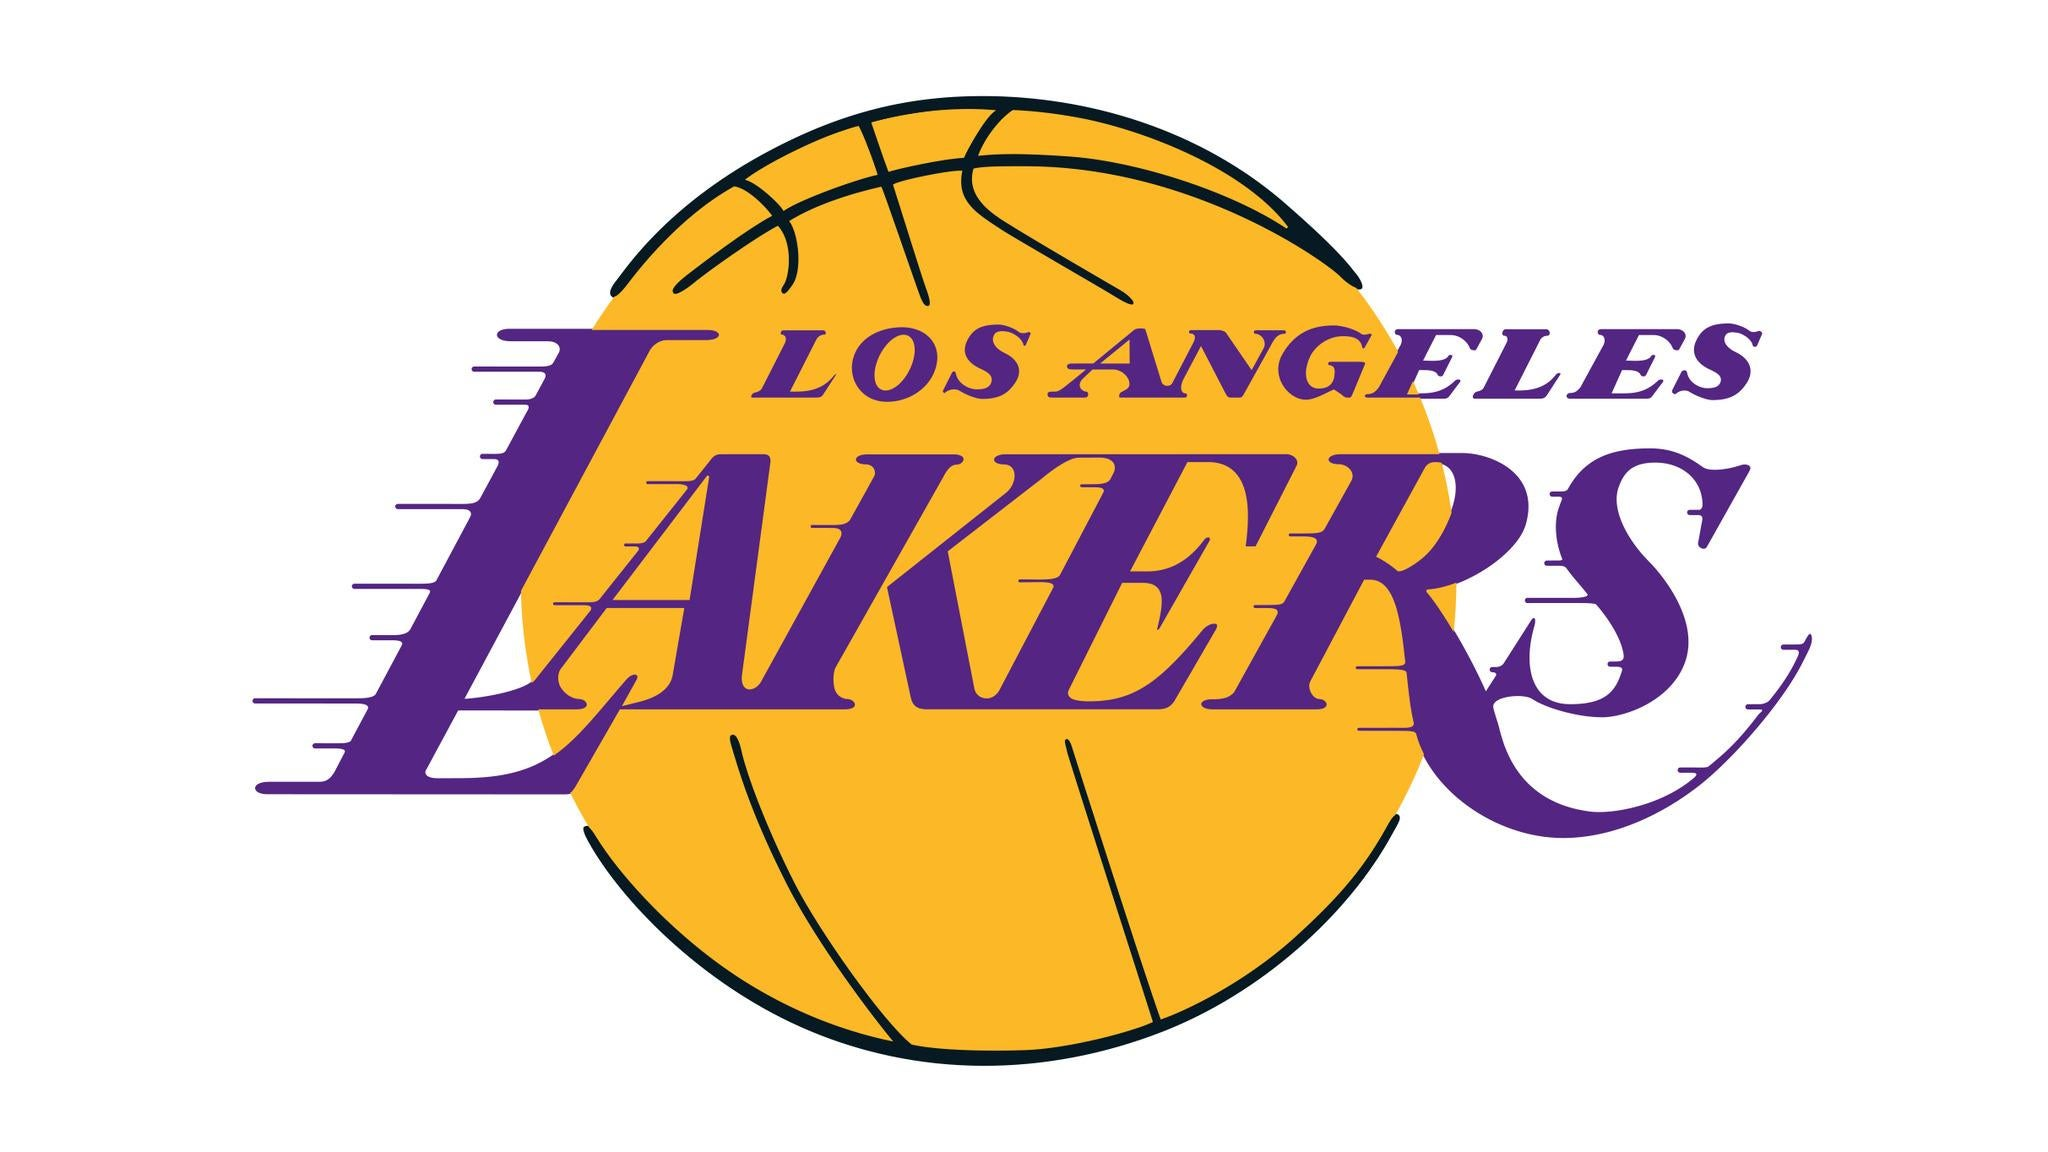 Los Angeles Lakers vs. Phoenix Suns at STAPLES Center - Los Angeles, CA 90015